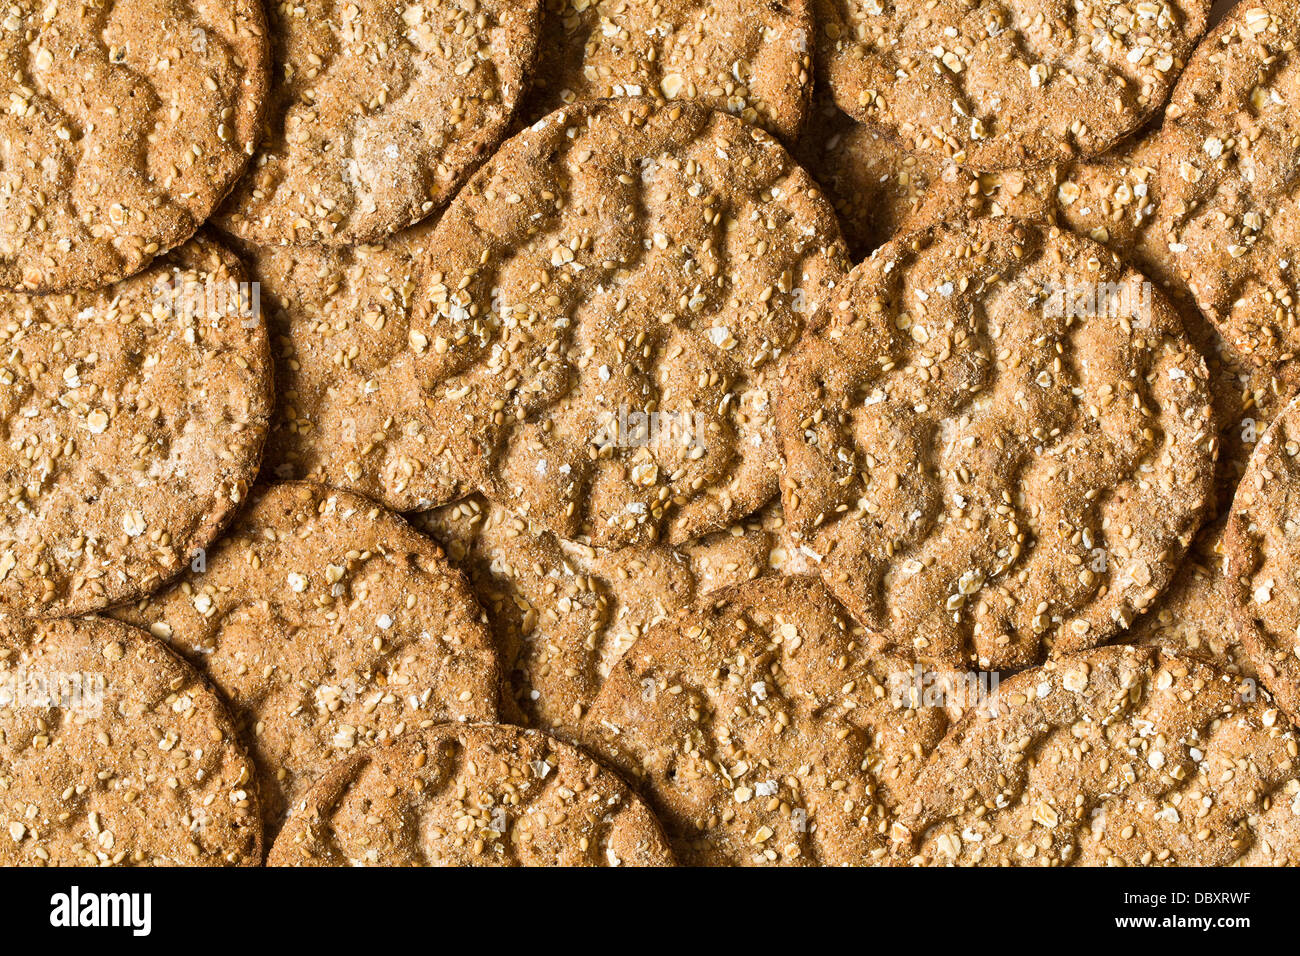 the background of a crispbread - Stock Image